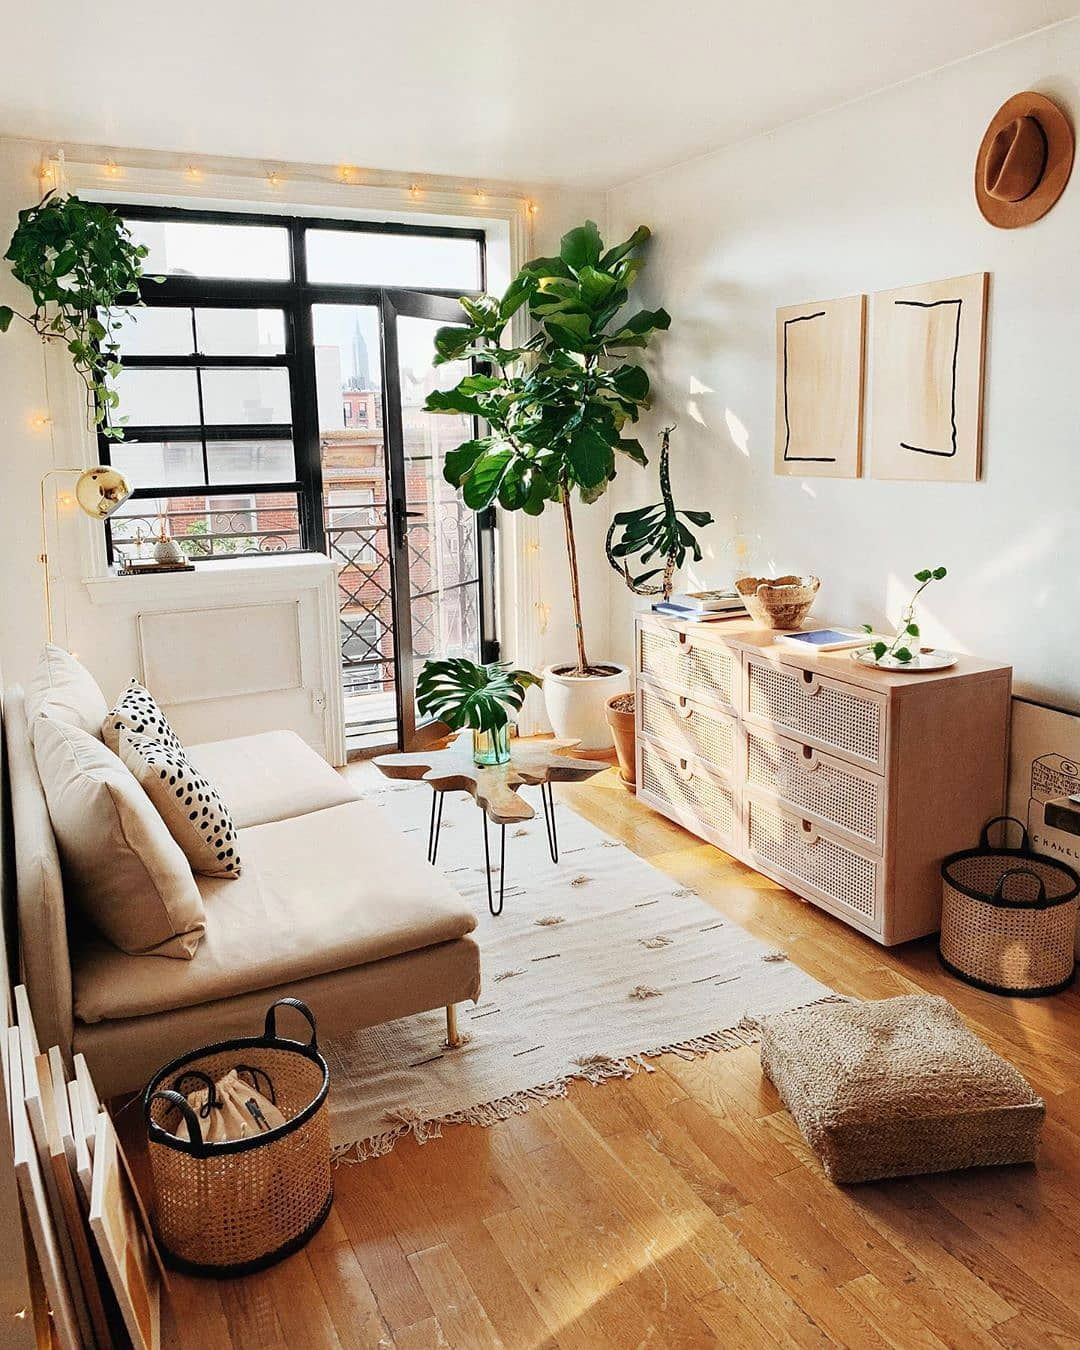 small living room, wooden floor, white wall, rattan cabinet, brown sofa, rug, glass window and door